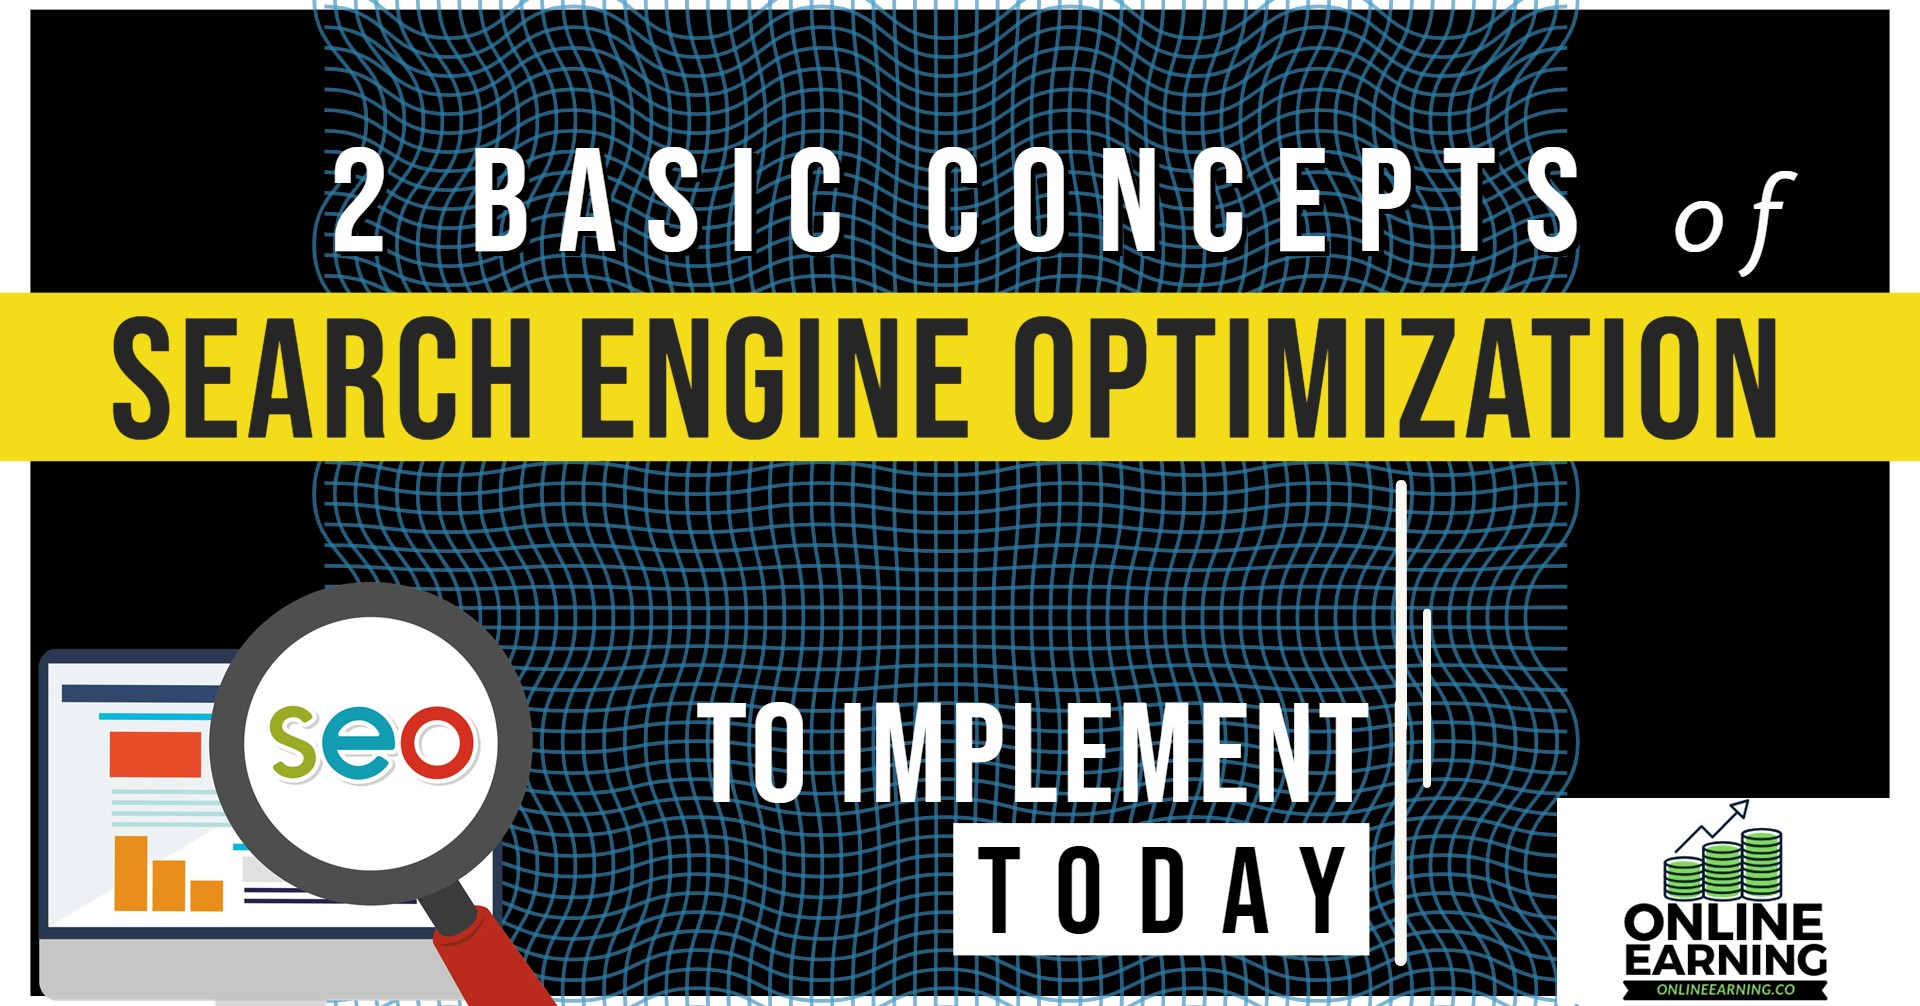 2 Basic Concepts Of Search Engine Optimization